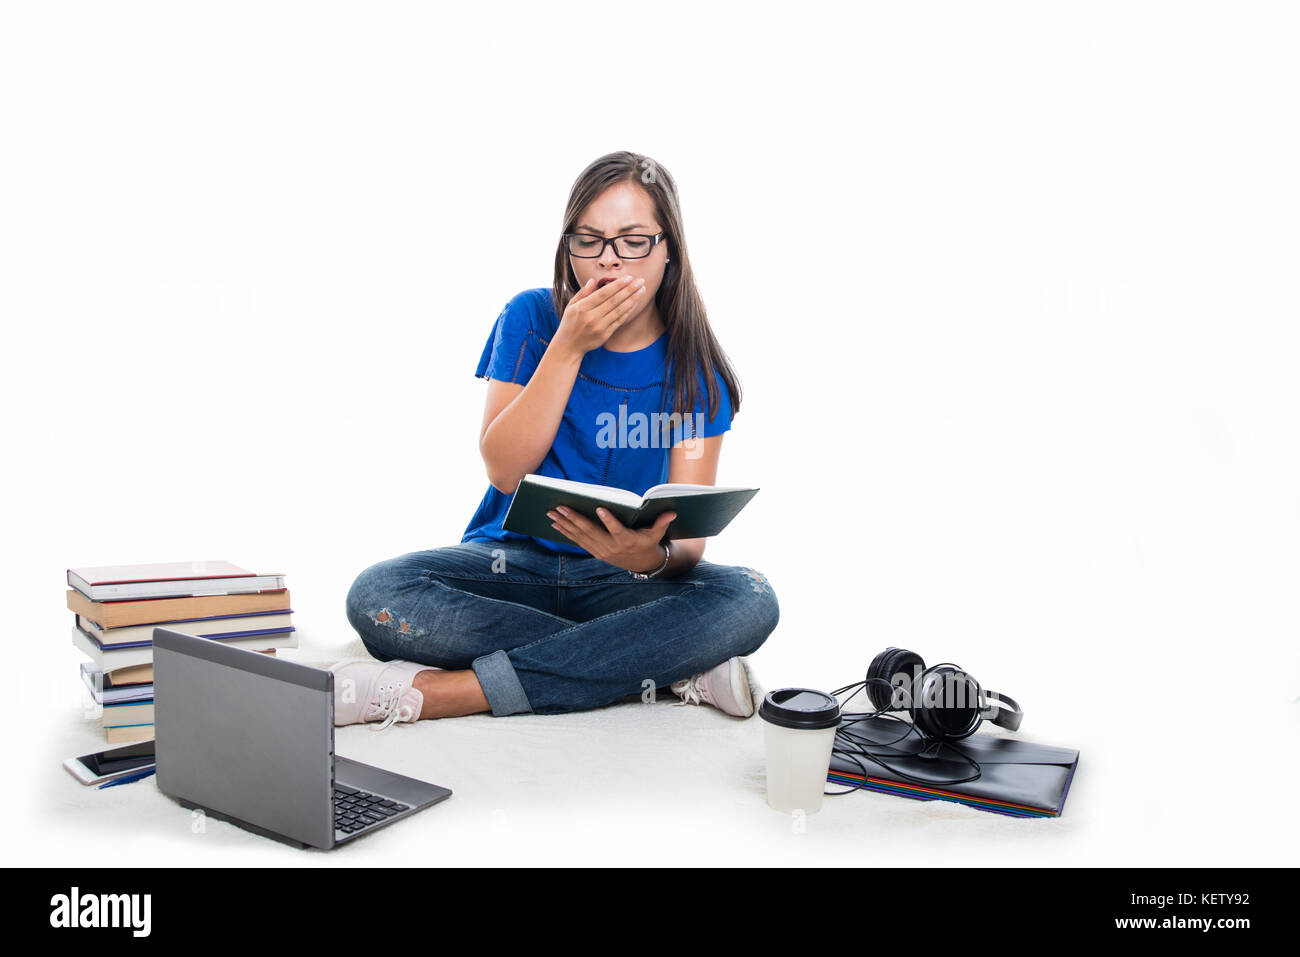 Student girl sitting studding and yawning like being tired with books and coffee around isolated on white background - Stock Image